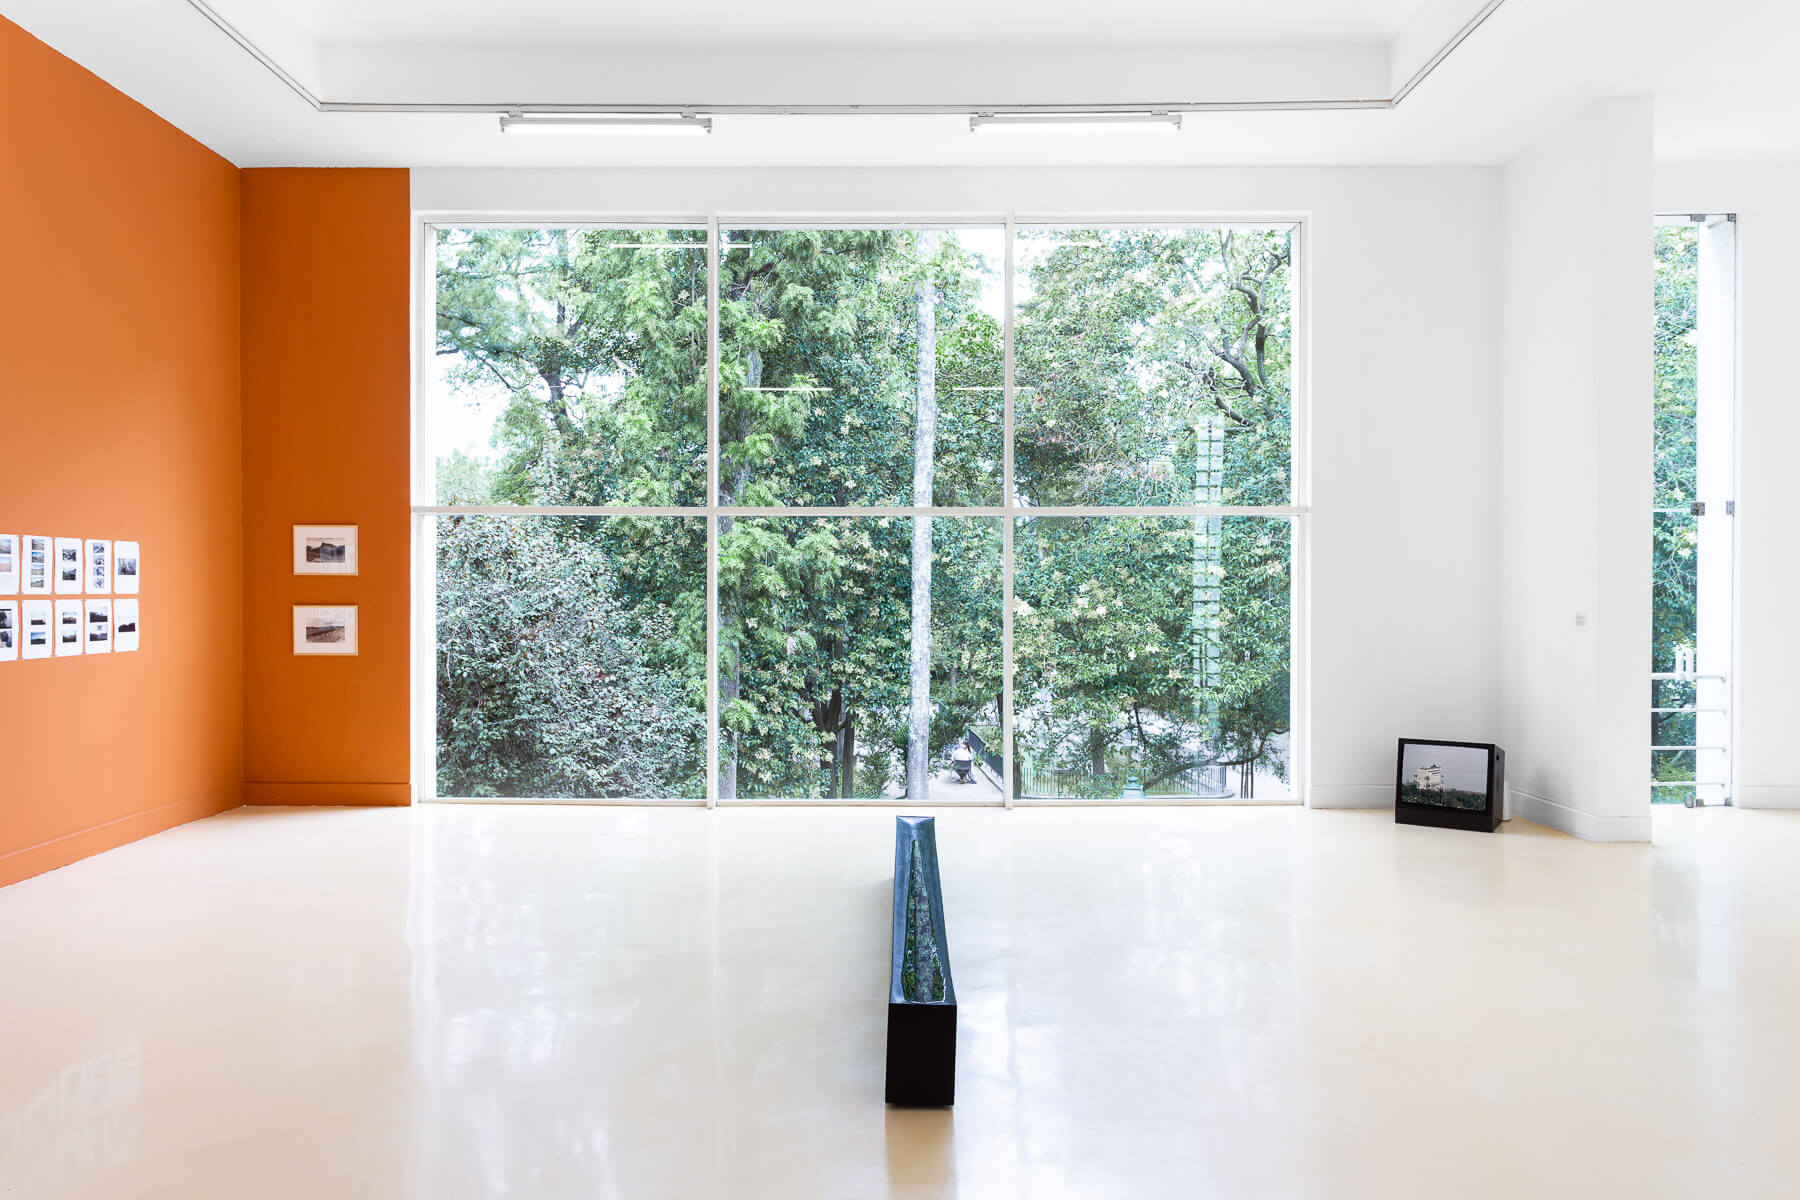 Installation view, On the edge of the landscape comes the world, Pavilhão Branco, 2021